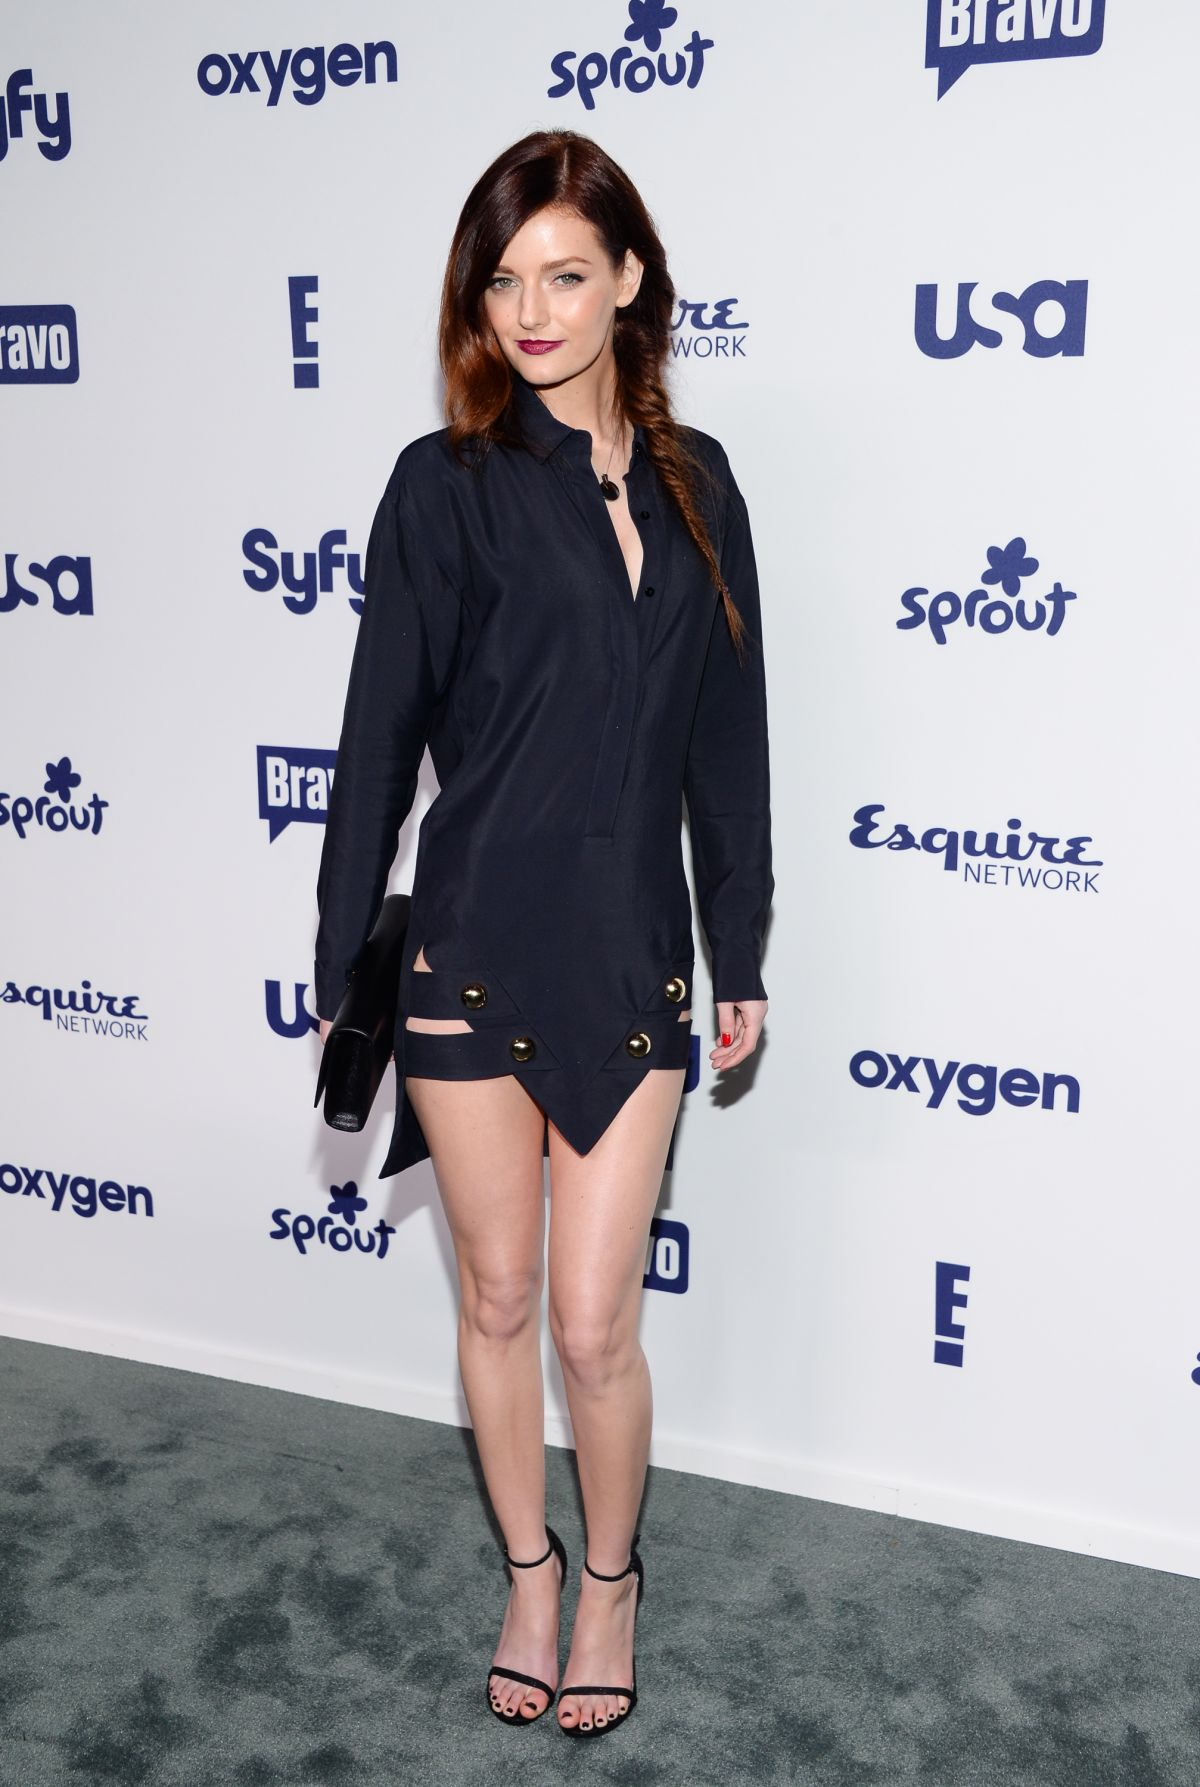 LYDIE HEARST at NBC/Universal Cable Entertainment Upfront Presentation in New York